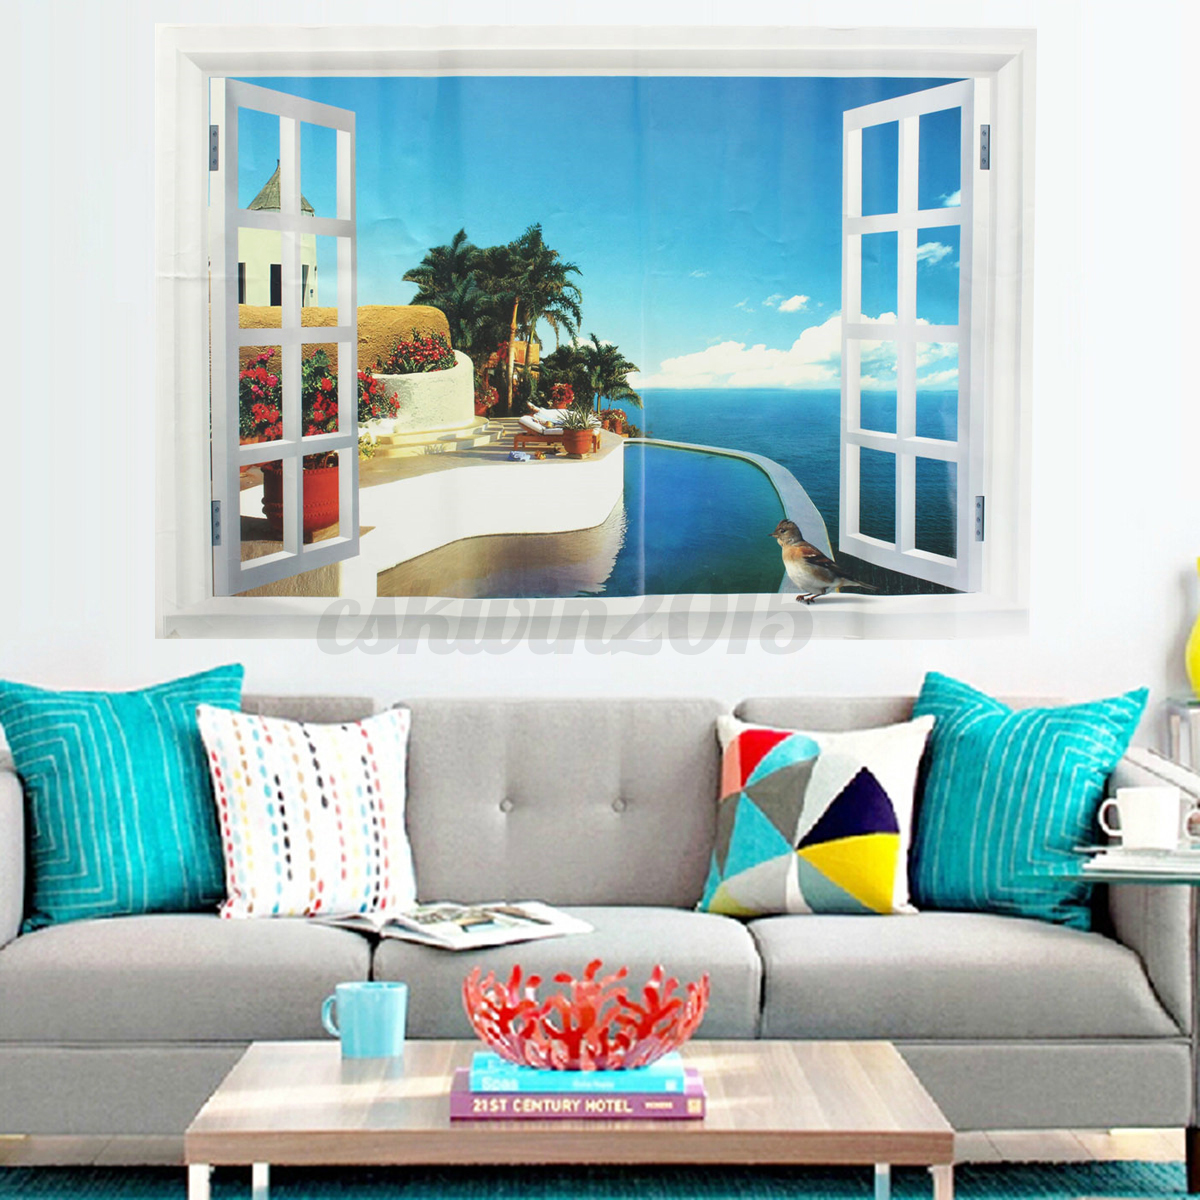 3d ocean beach window wall sticker decals room decor vinyl for 3d room decor